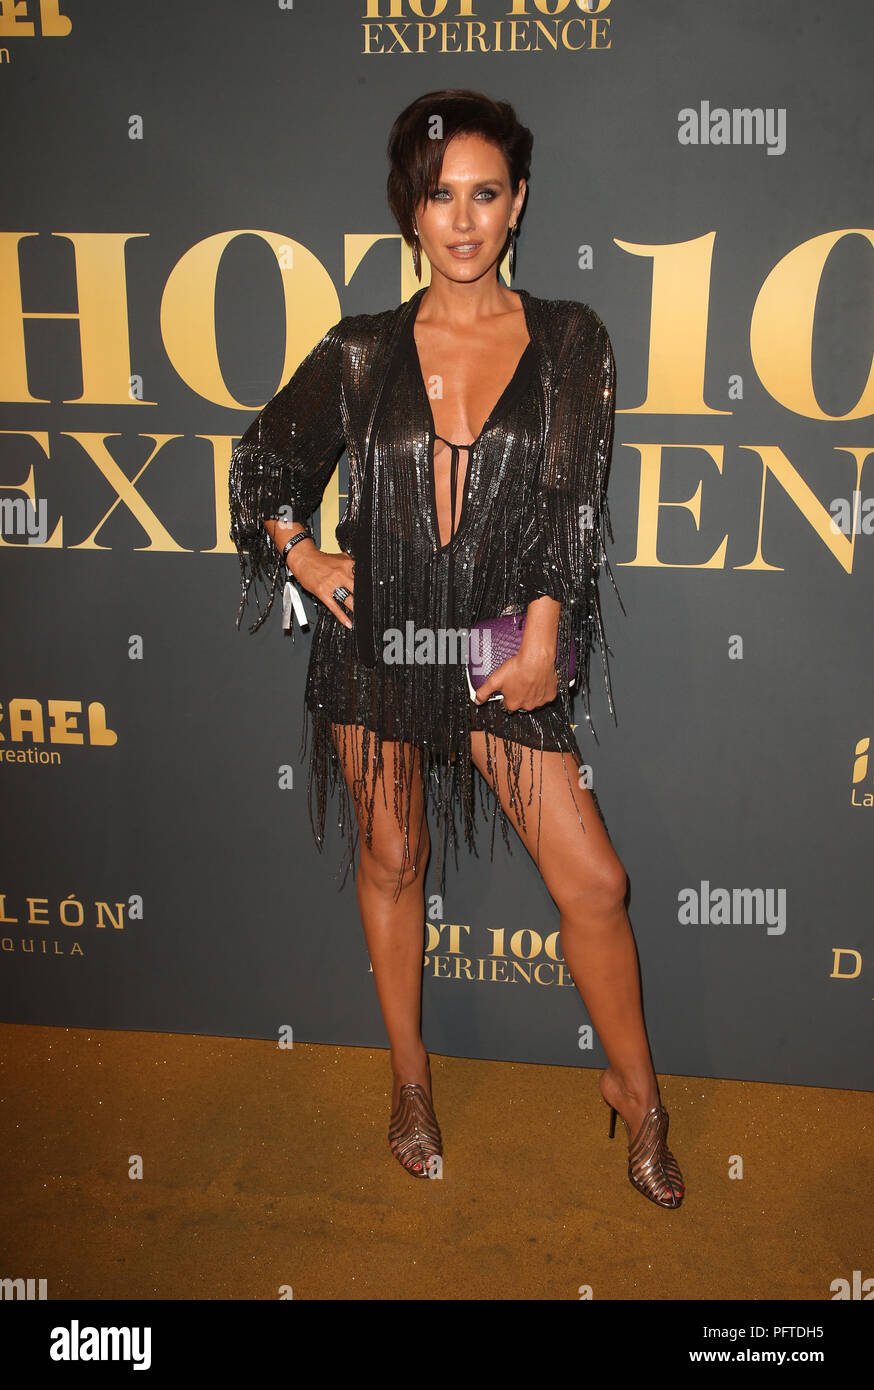 The Maxim Hot 100 Experience Featuring Nicky Whelan Where Hollywood California United States When 21 Jul 2018 Credit Fayesvision Wenn Com Stock Photo Alamy